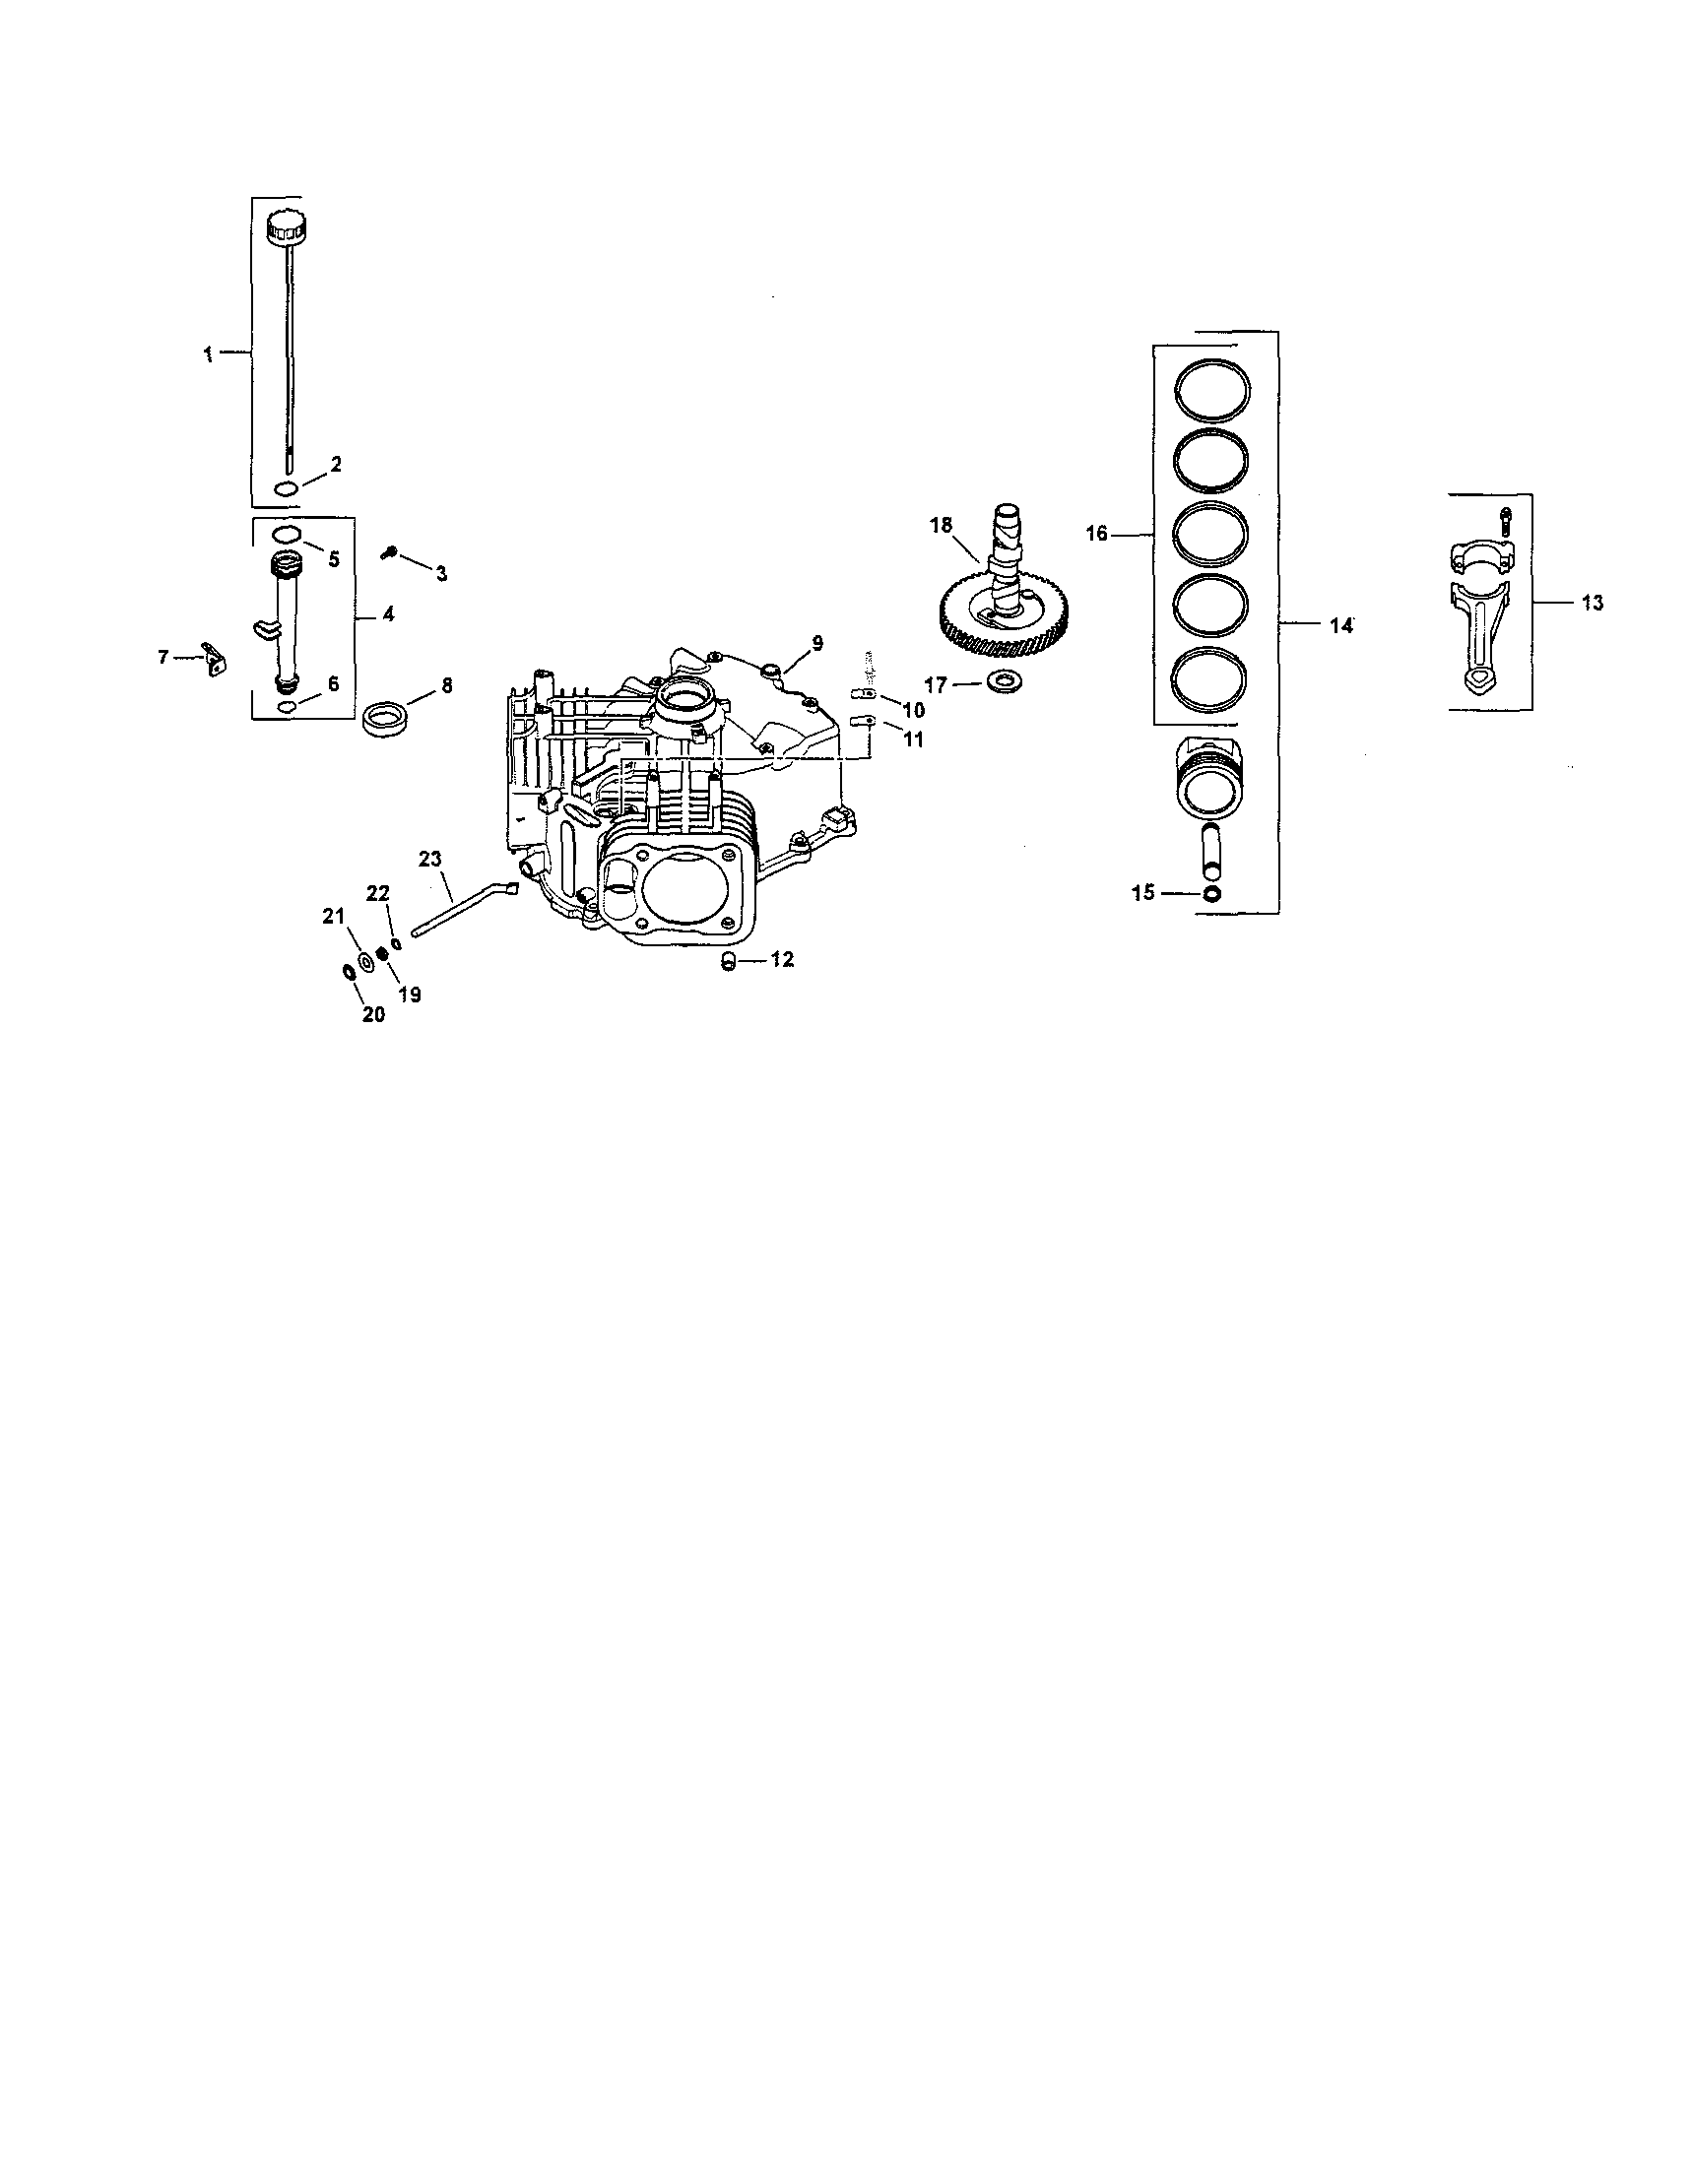 Model Sv735 0017 Kohler Wiring Diagram : 38 Wiring Diagram